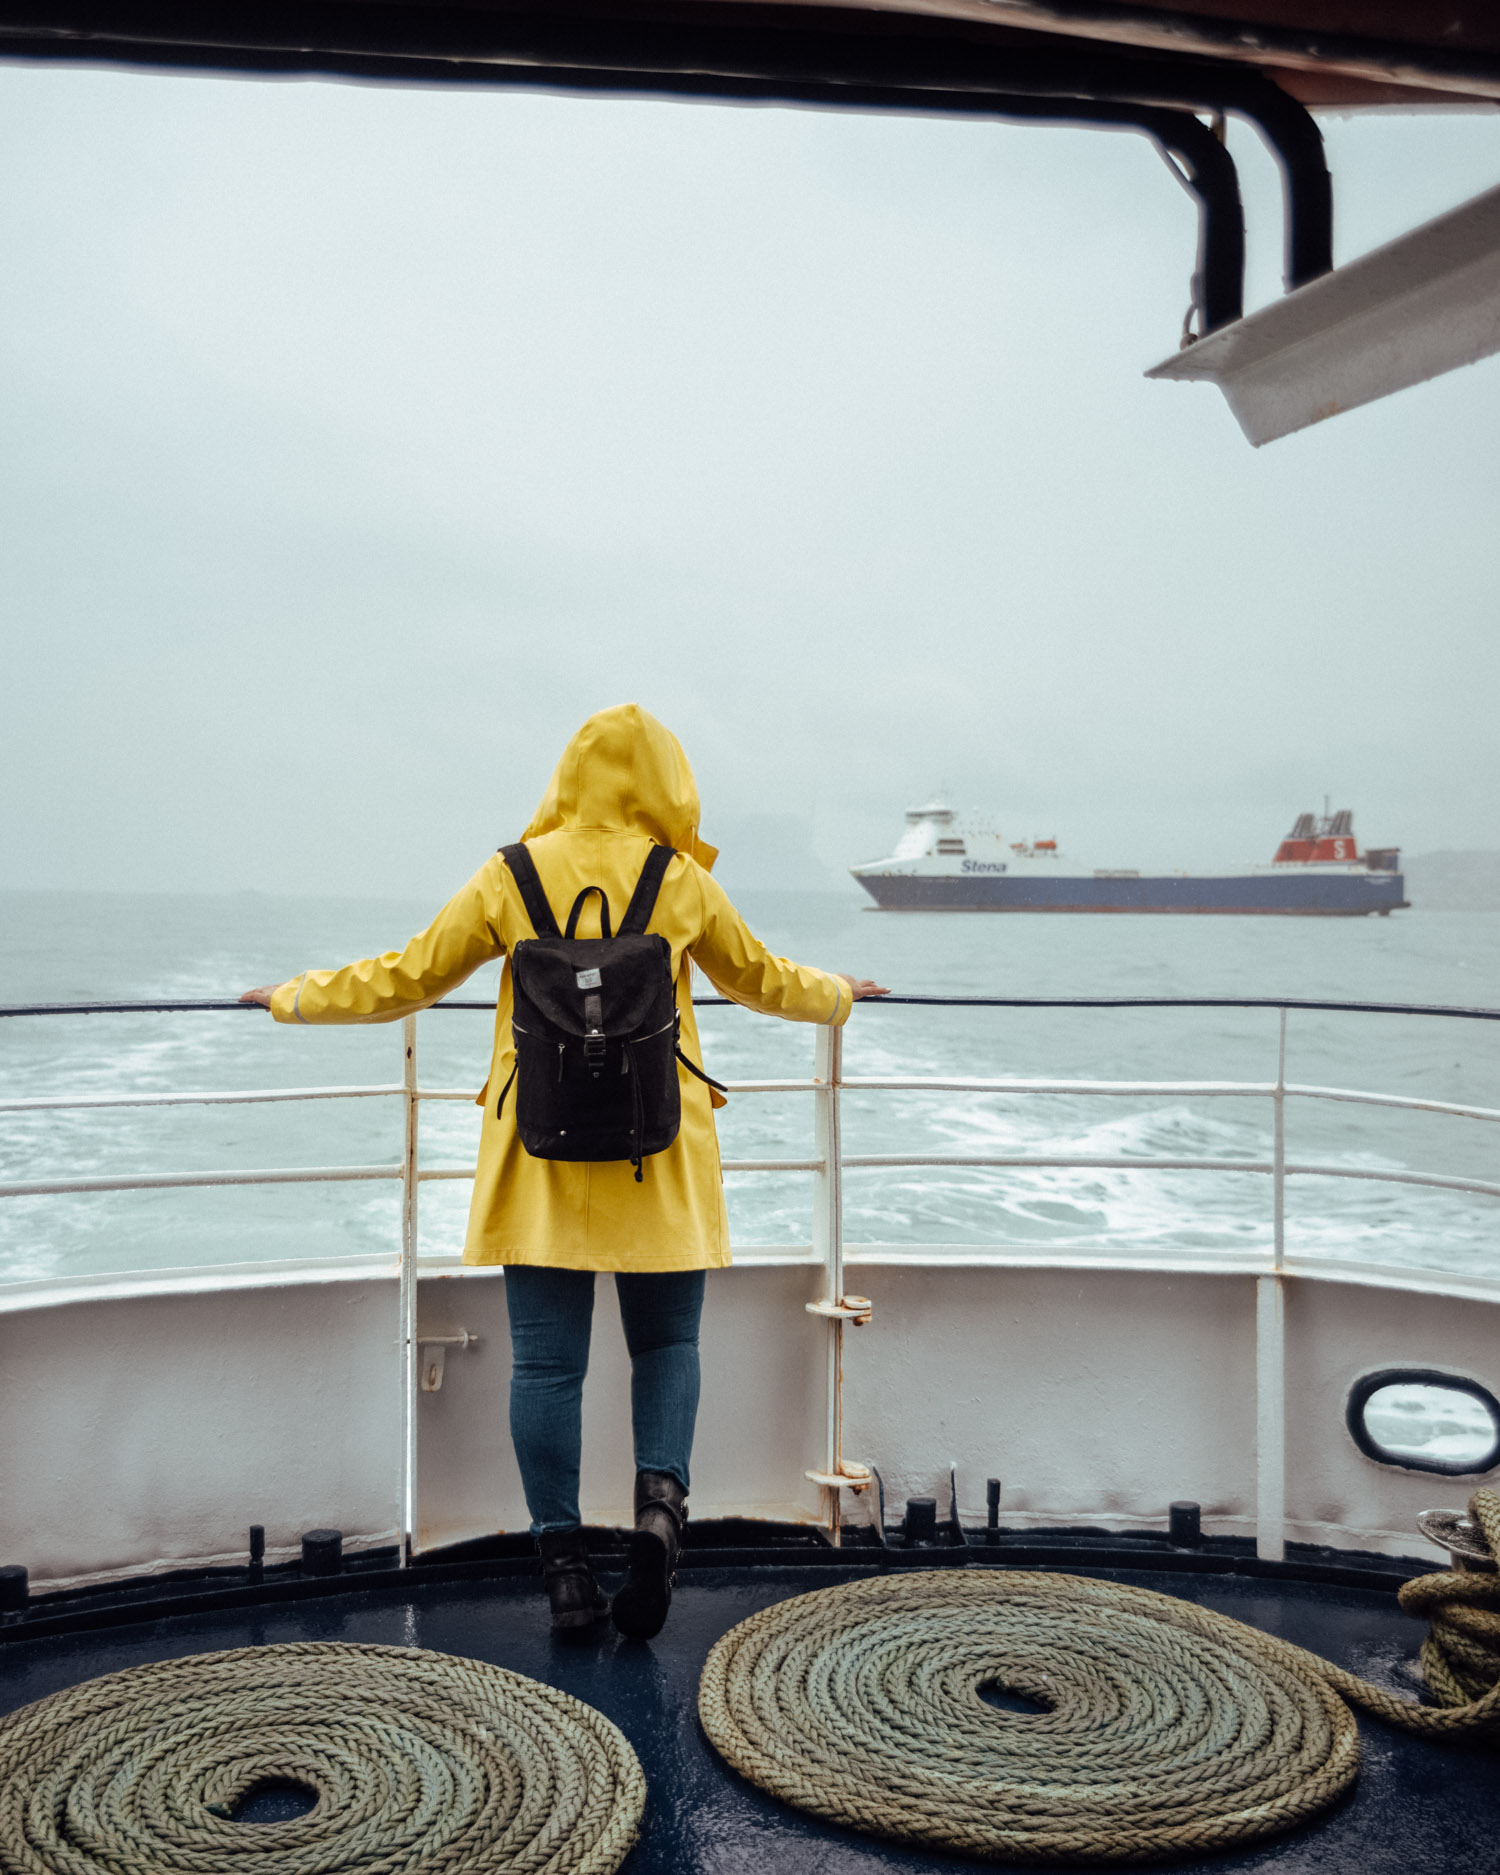 Dublin Bay Cruises to Howth | Woman with yellow raincoat standing on a boat in the rain